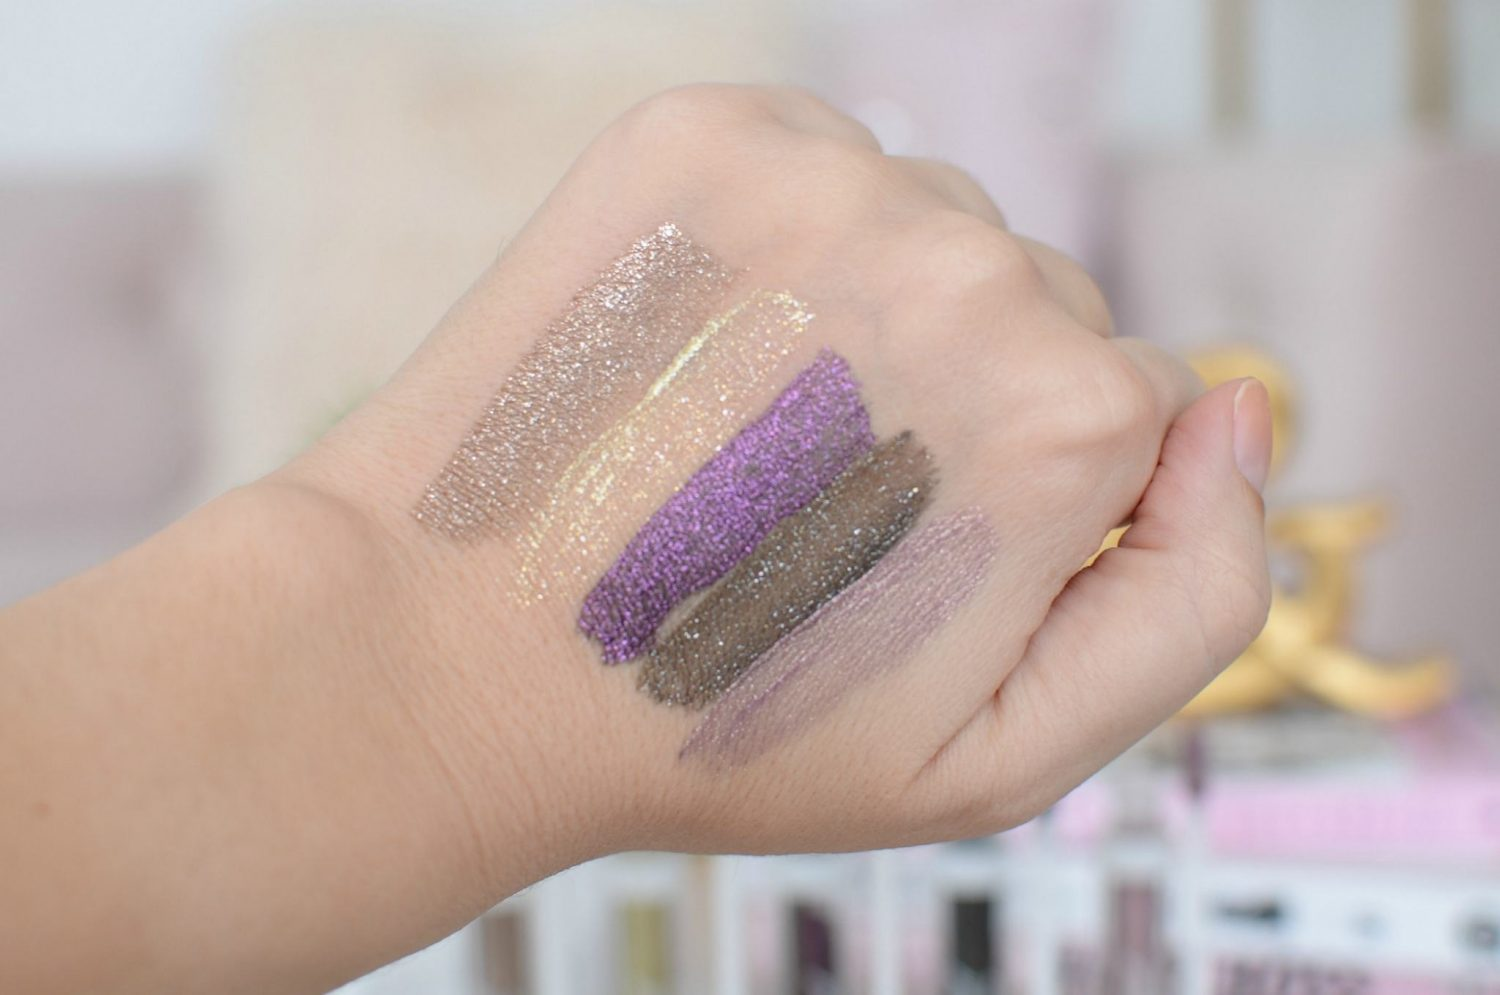 Wet N' Wild Mega Last Liquid Catsuit Shimmer Liquid Eyeshadow